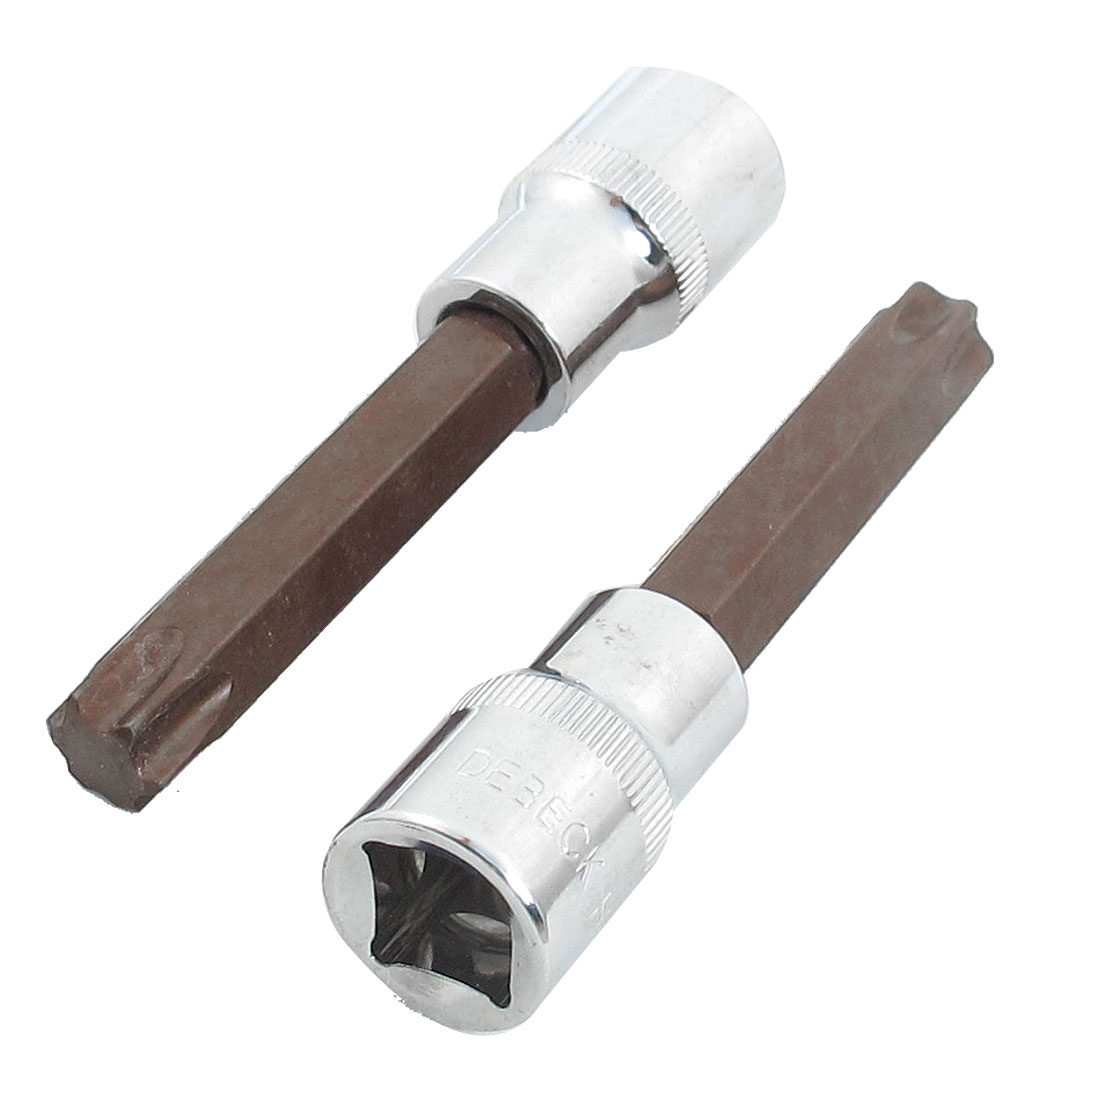 "2 Pcs T60 33/64"" Torx Head Screwdriver Link 1/2"" Square Mechanic Drive Socket"